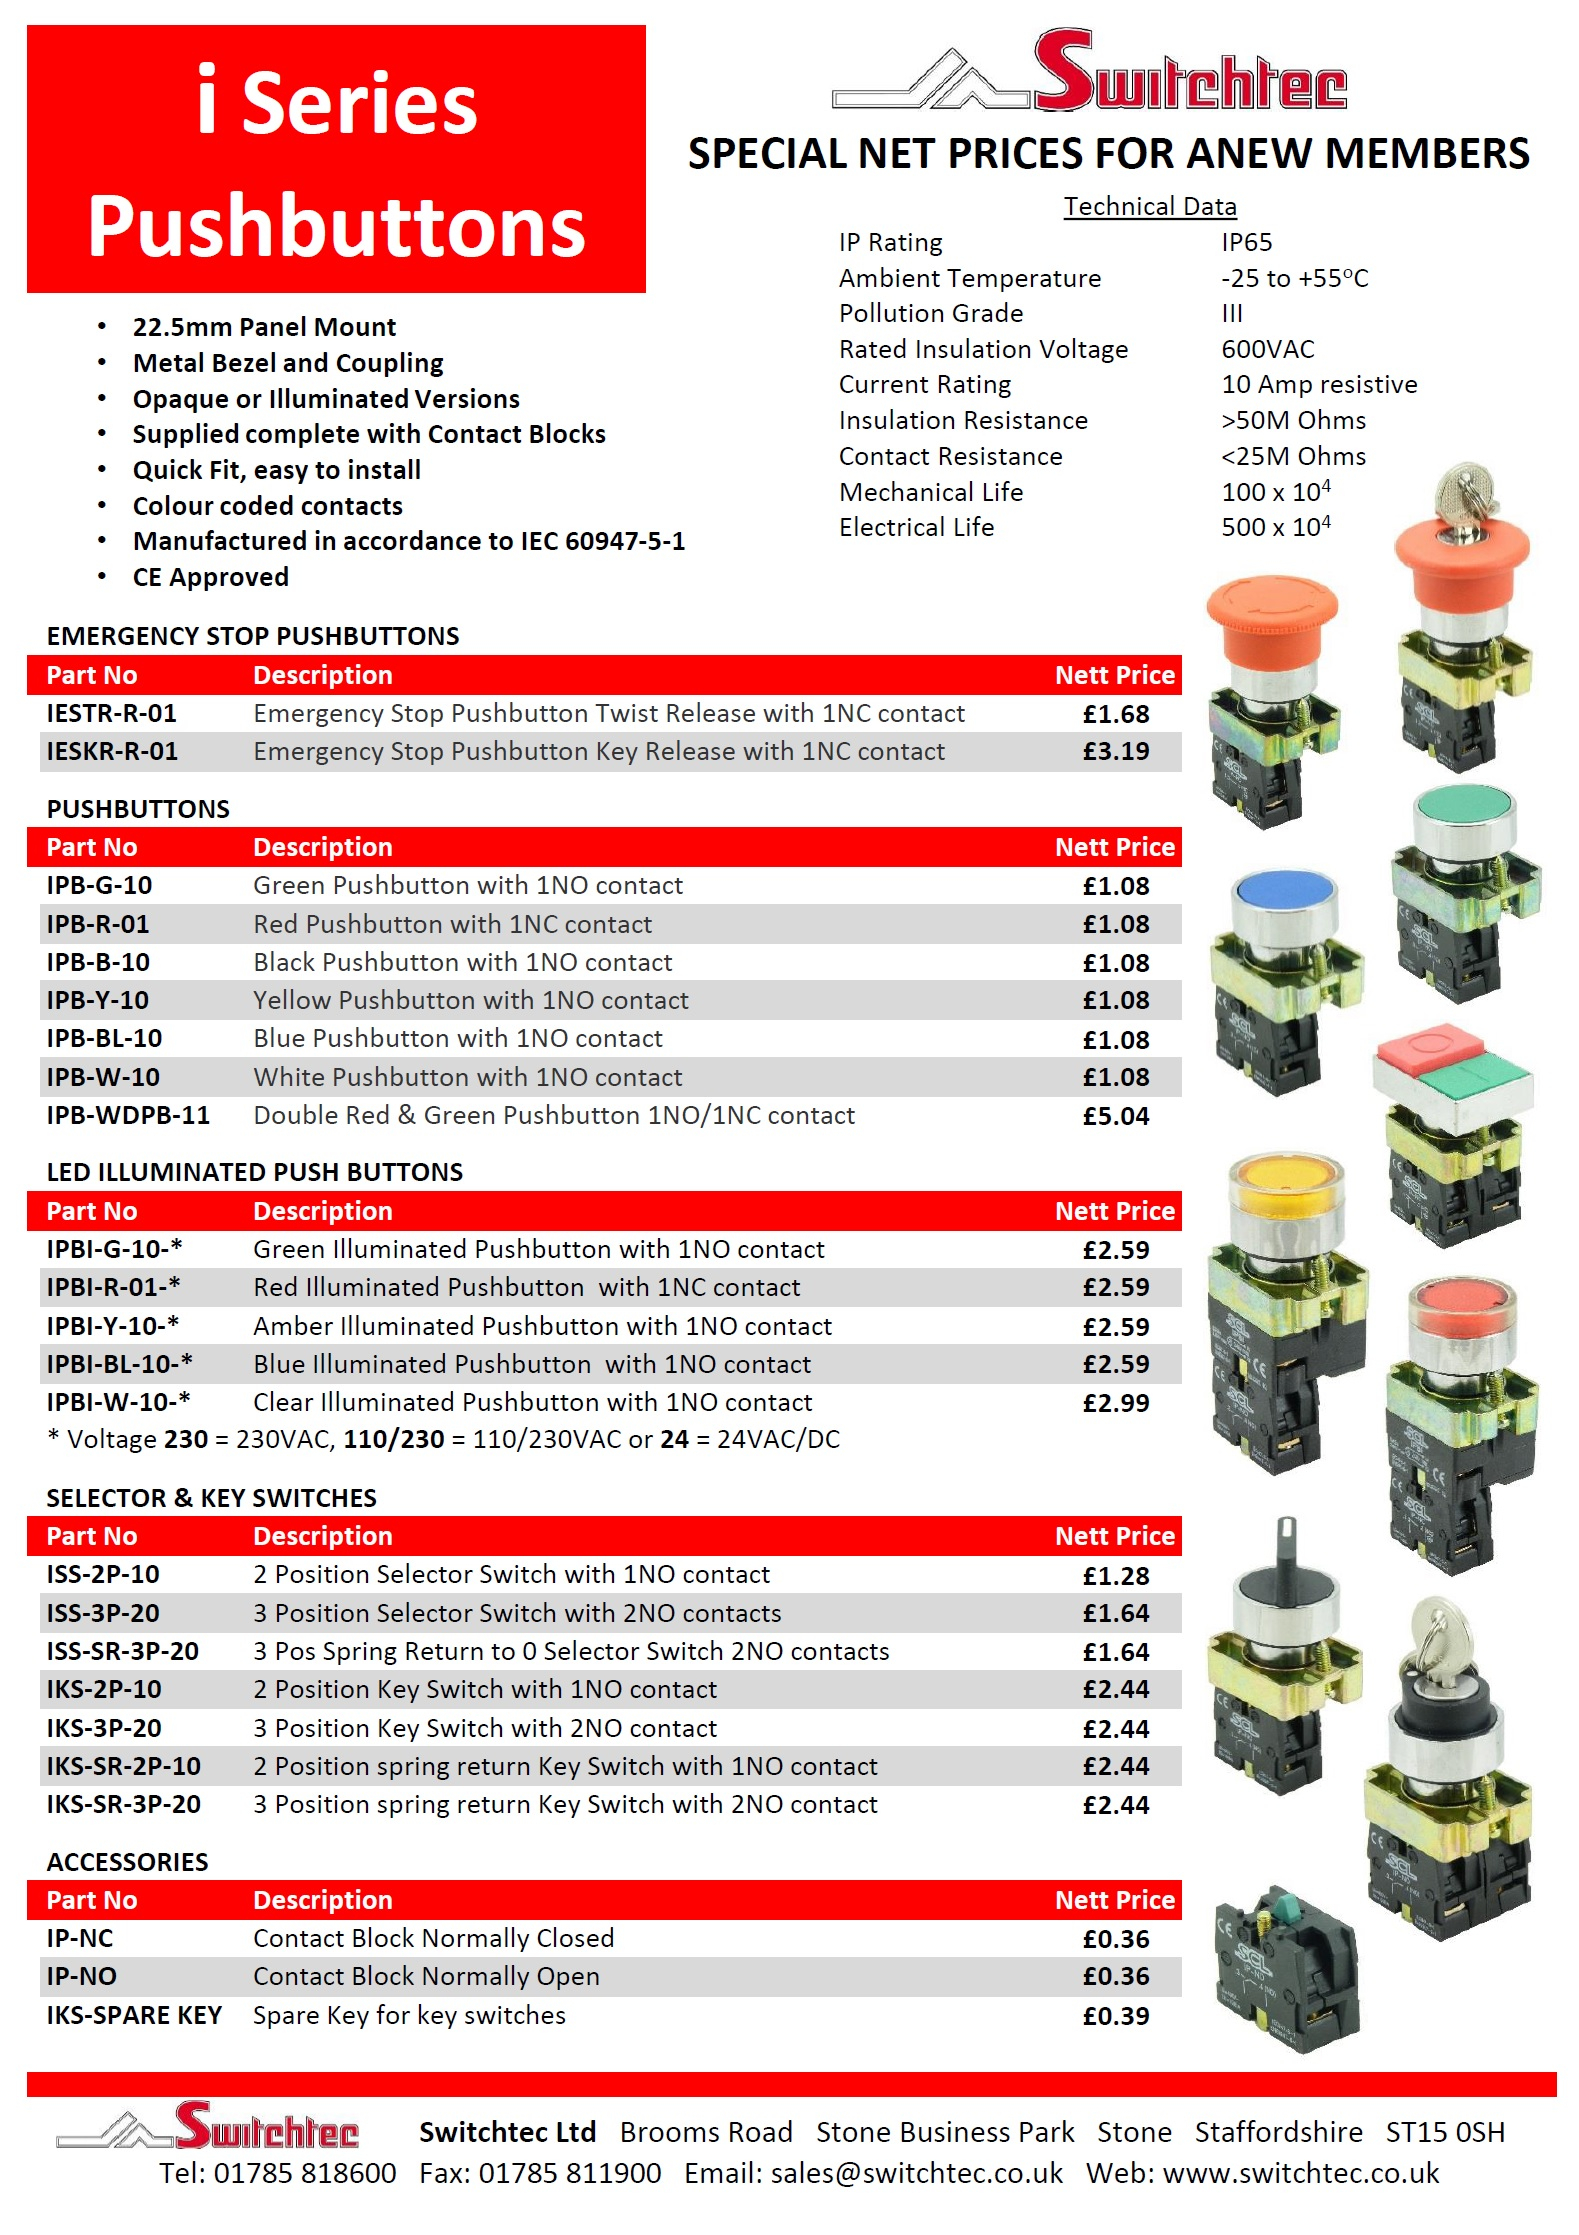 i-Series pushbutton datasheet